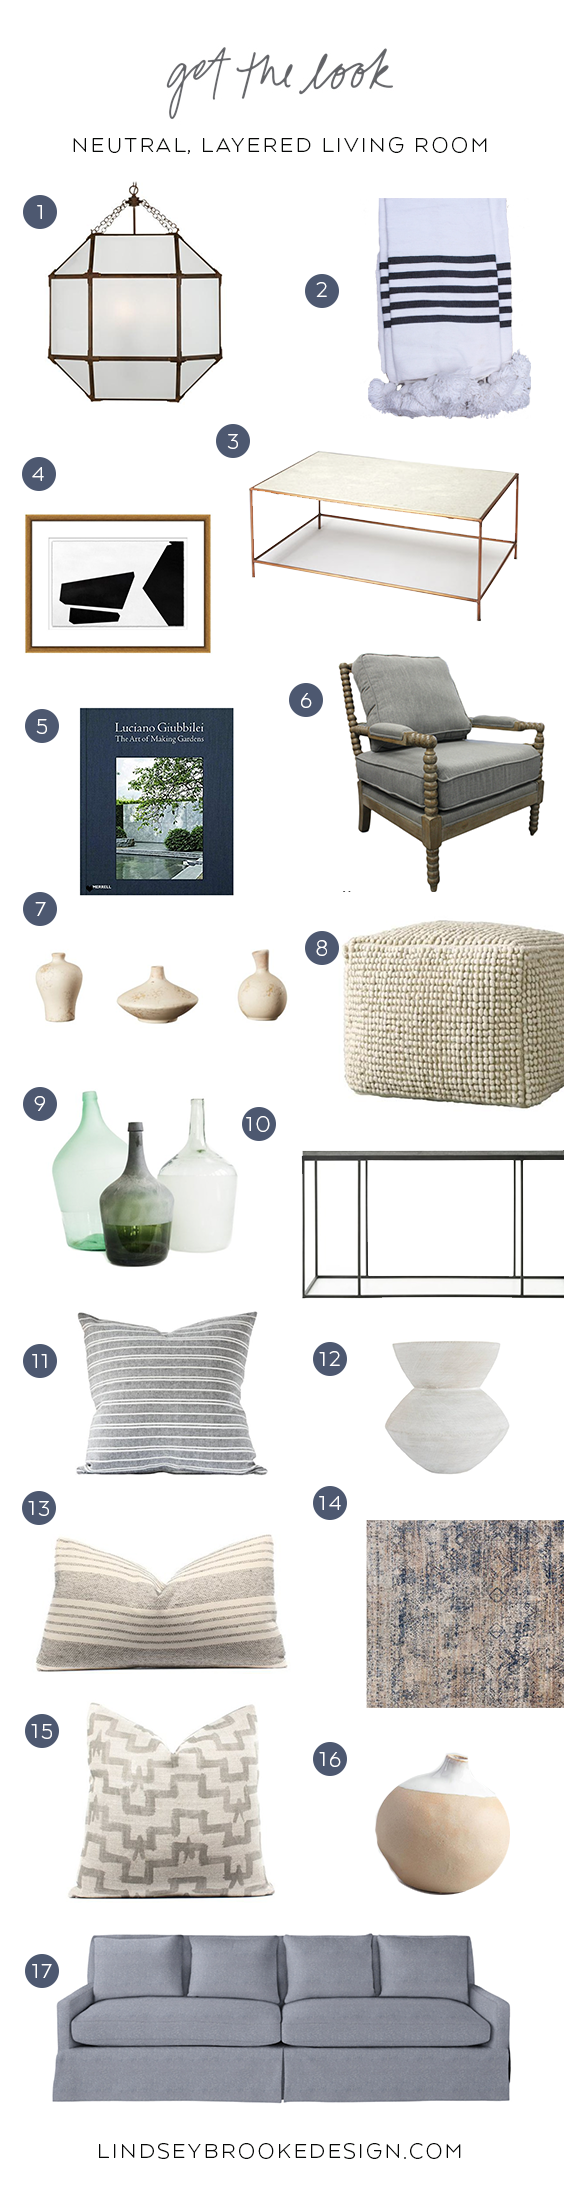 Get the look: Neutral, Layered Living Room Park Cotttage Part II.png